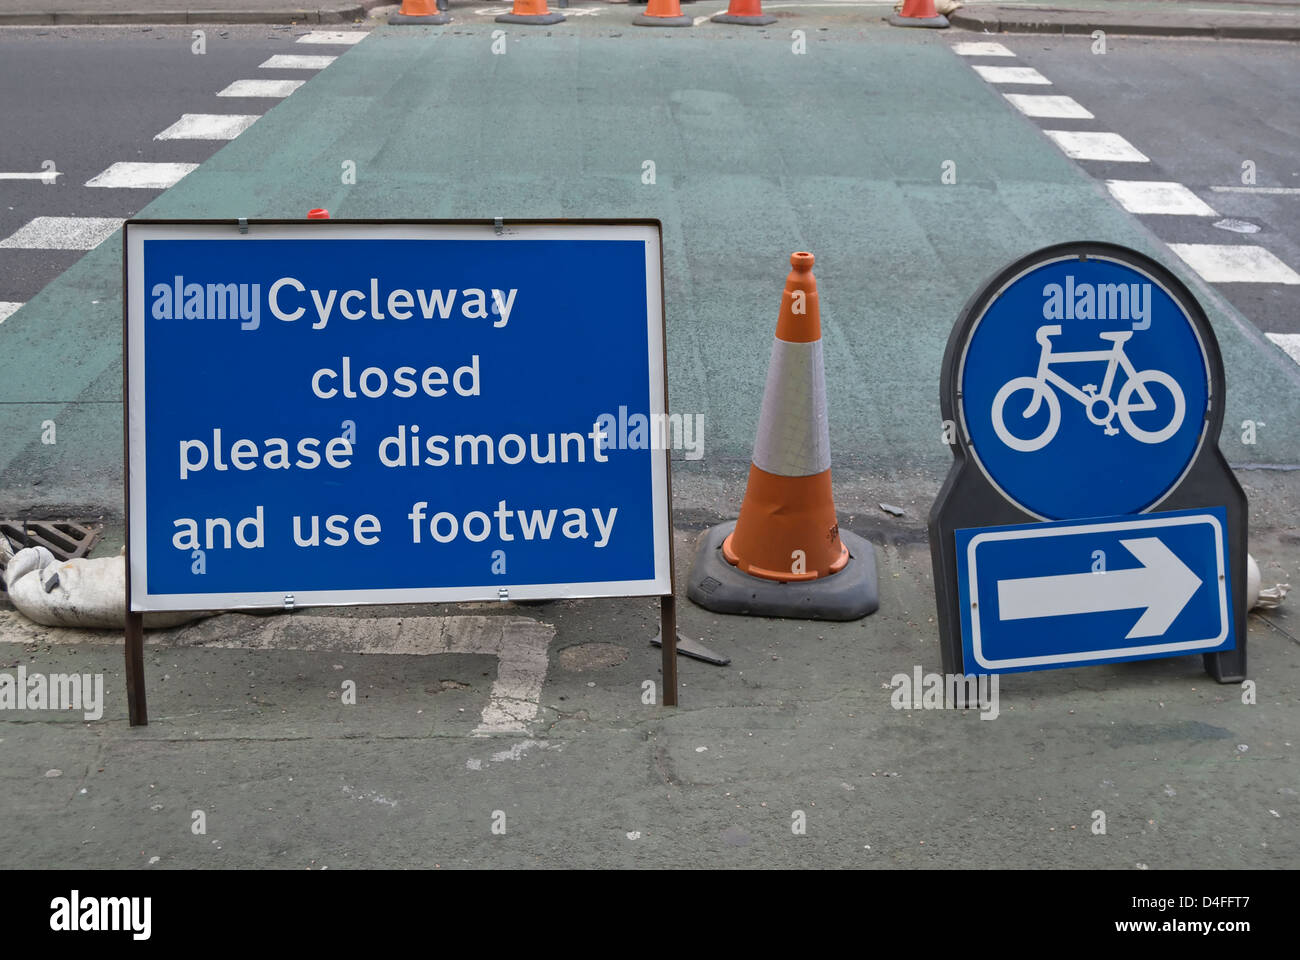 cycleway closed please dismount and use footway sign, kingston upon thames, surrey, england - Stock Image